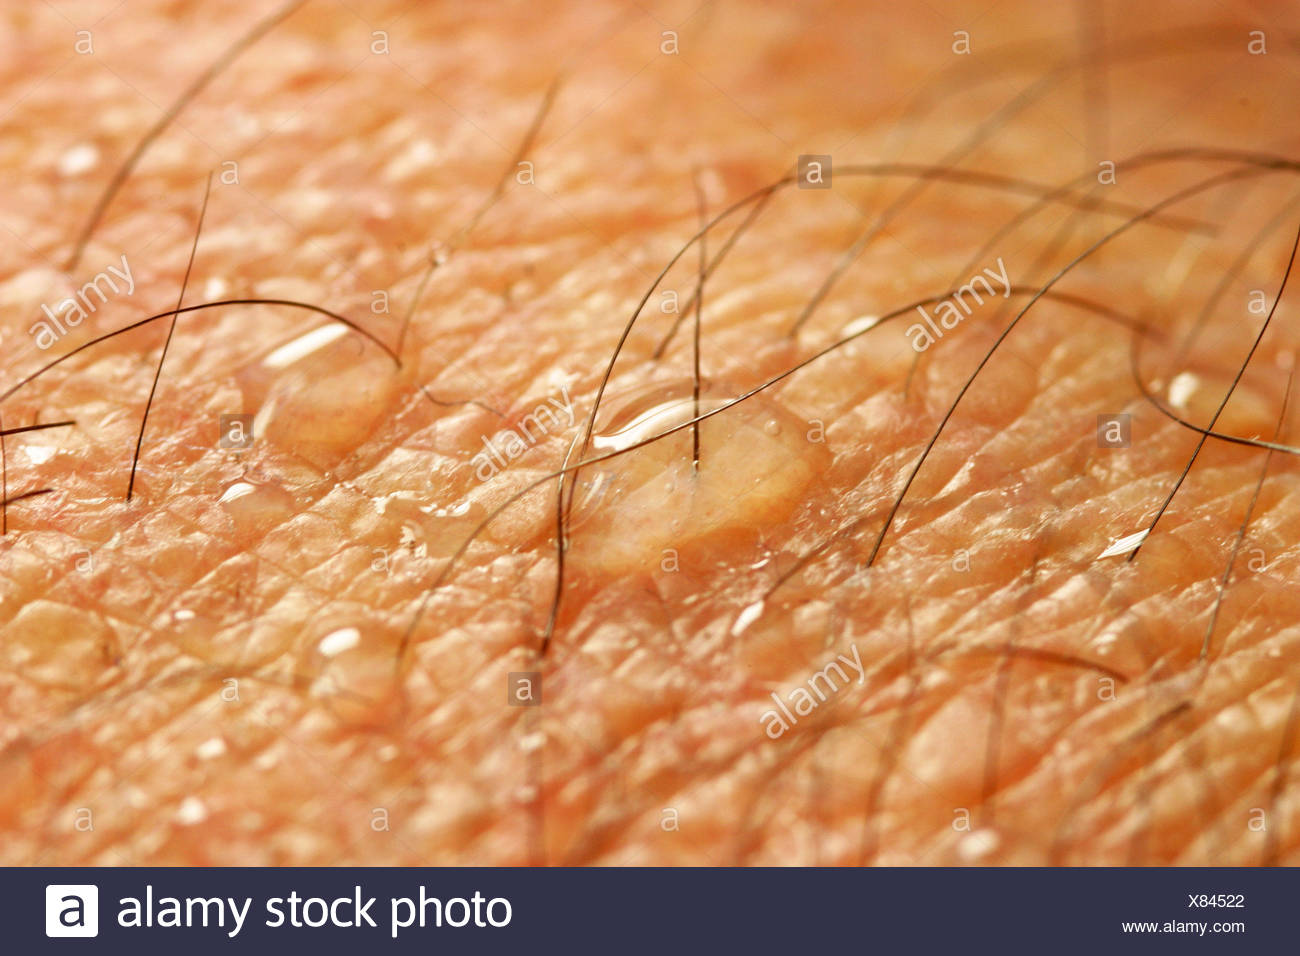 pores human stock photos pores human stock images alamy pores human stock photos pores human stock images alamy